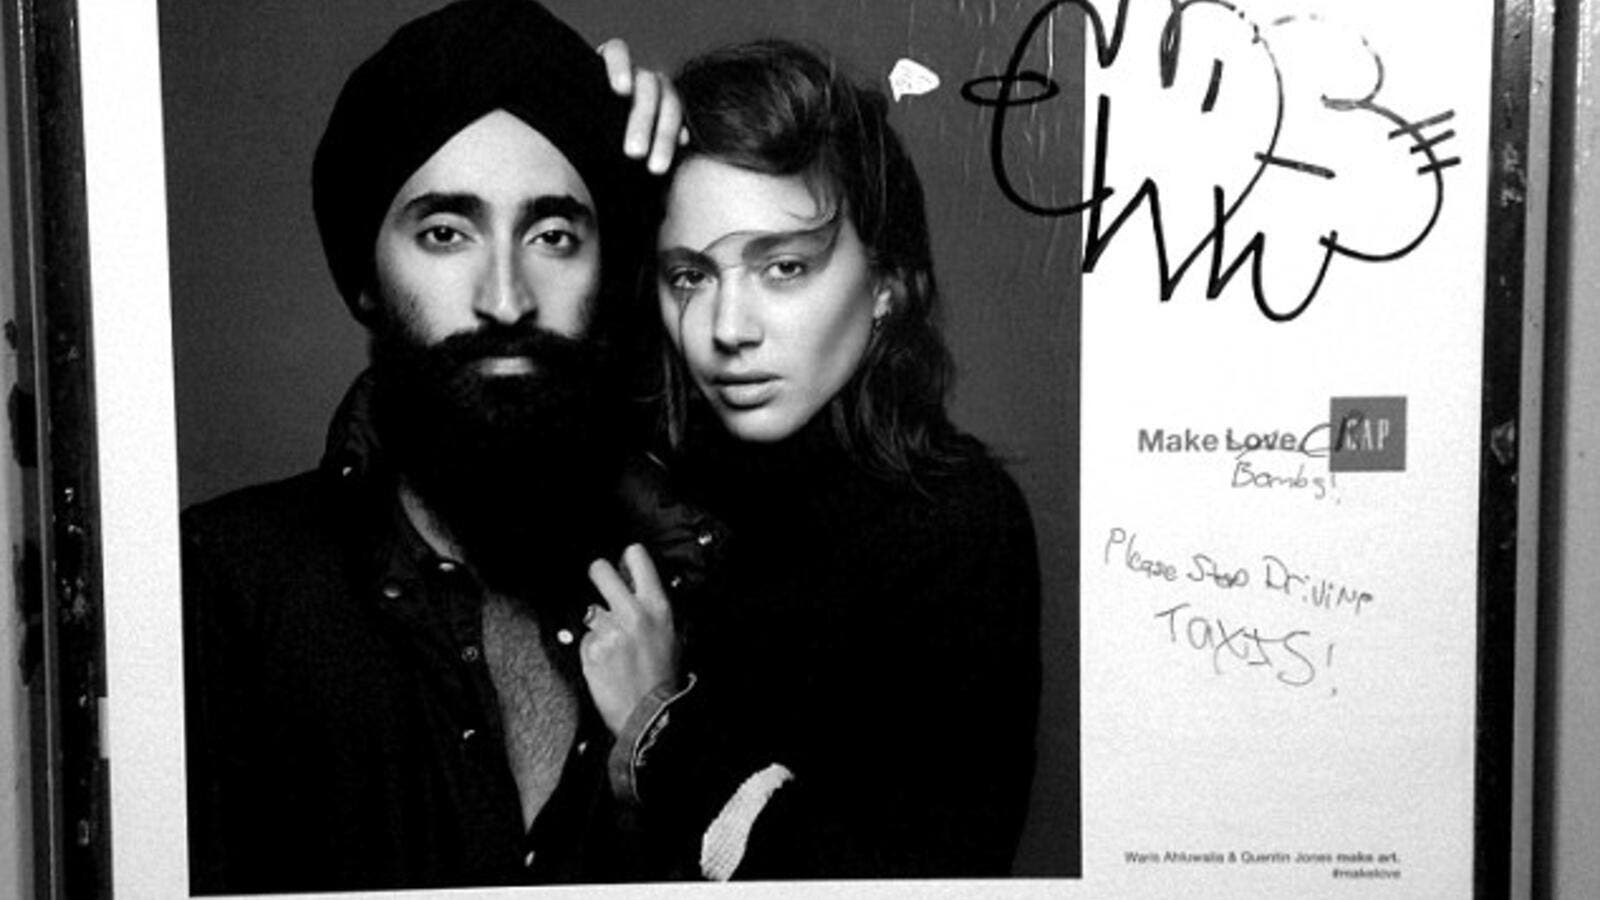 Anti-Muslim graffiti was found scribbled on a GAP ad featuring the Sikh jewelry designer and actor Waris Ahluwalia on a New York City subway platform. [Robert Gerhardt]